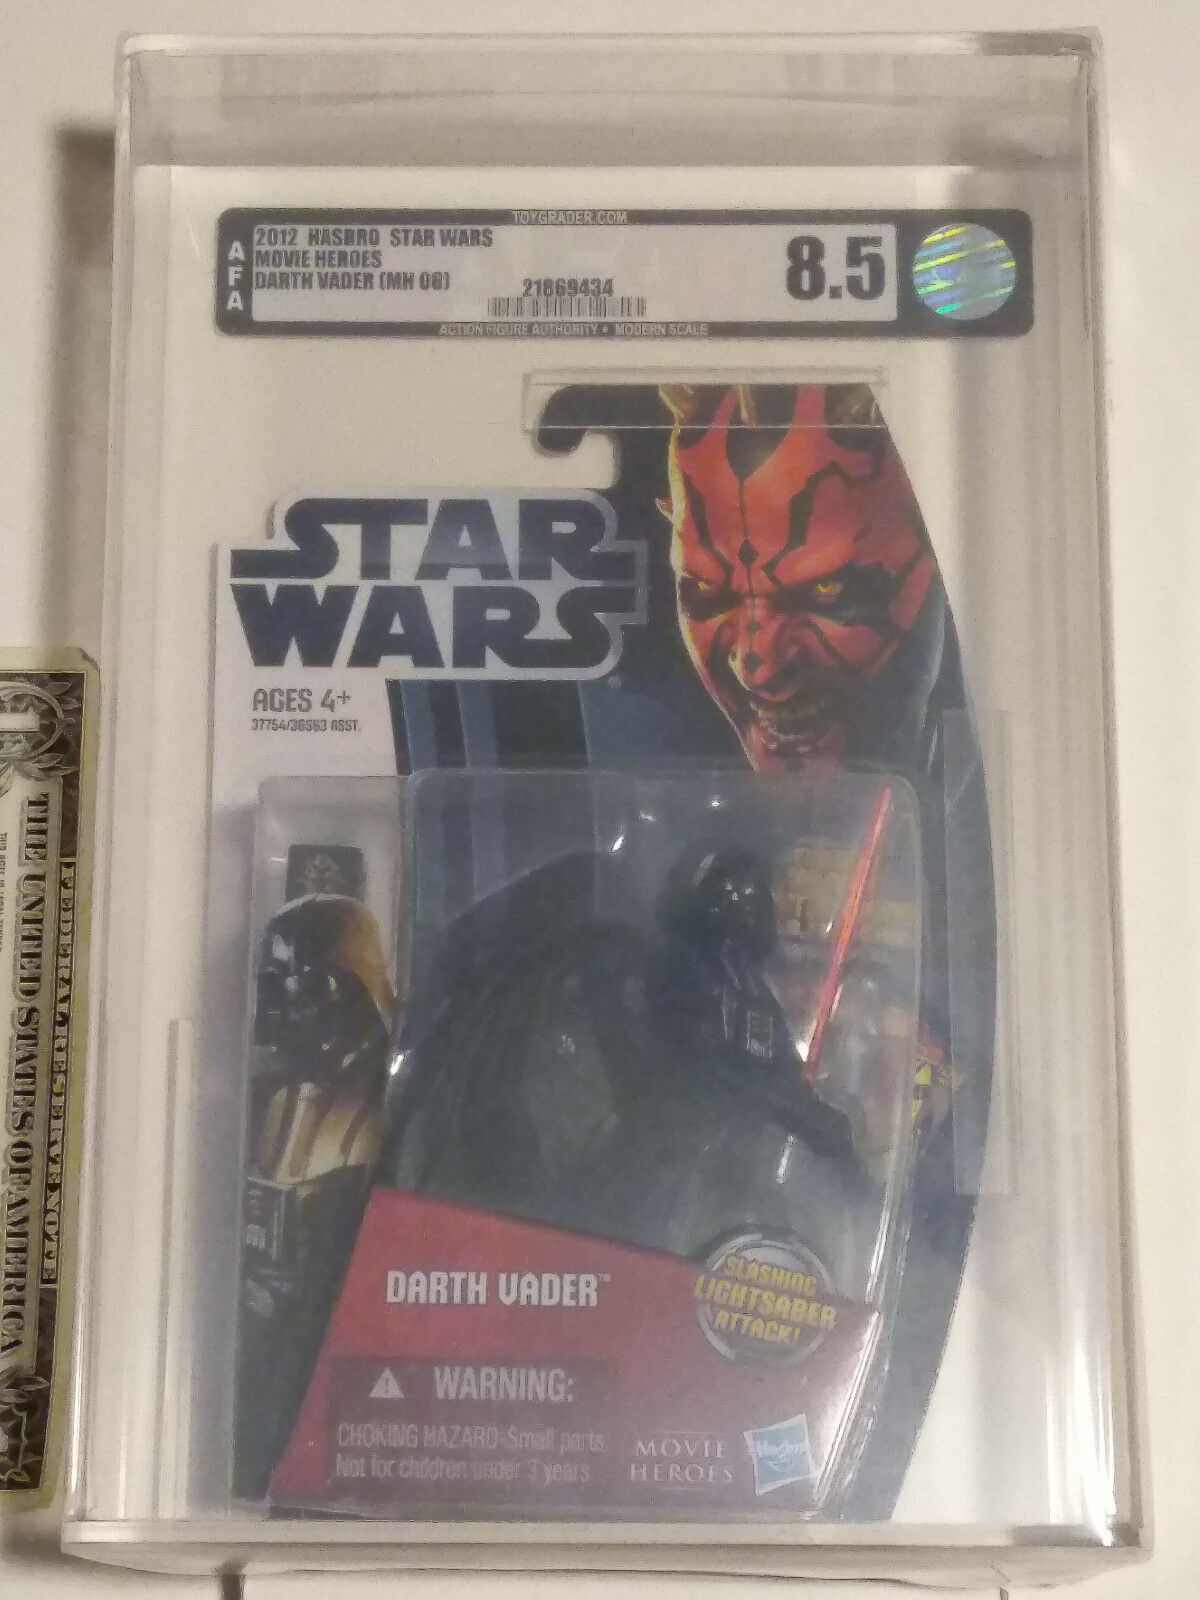 Afa 8,5  star wars  - film - helden darth vader ((06) 2012 von hasbro in 2012